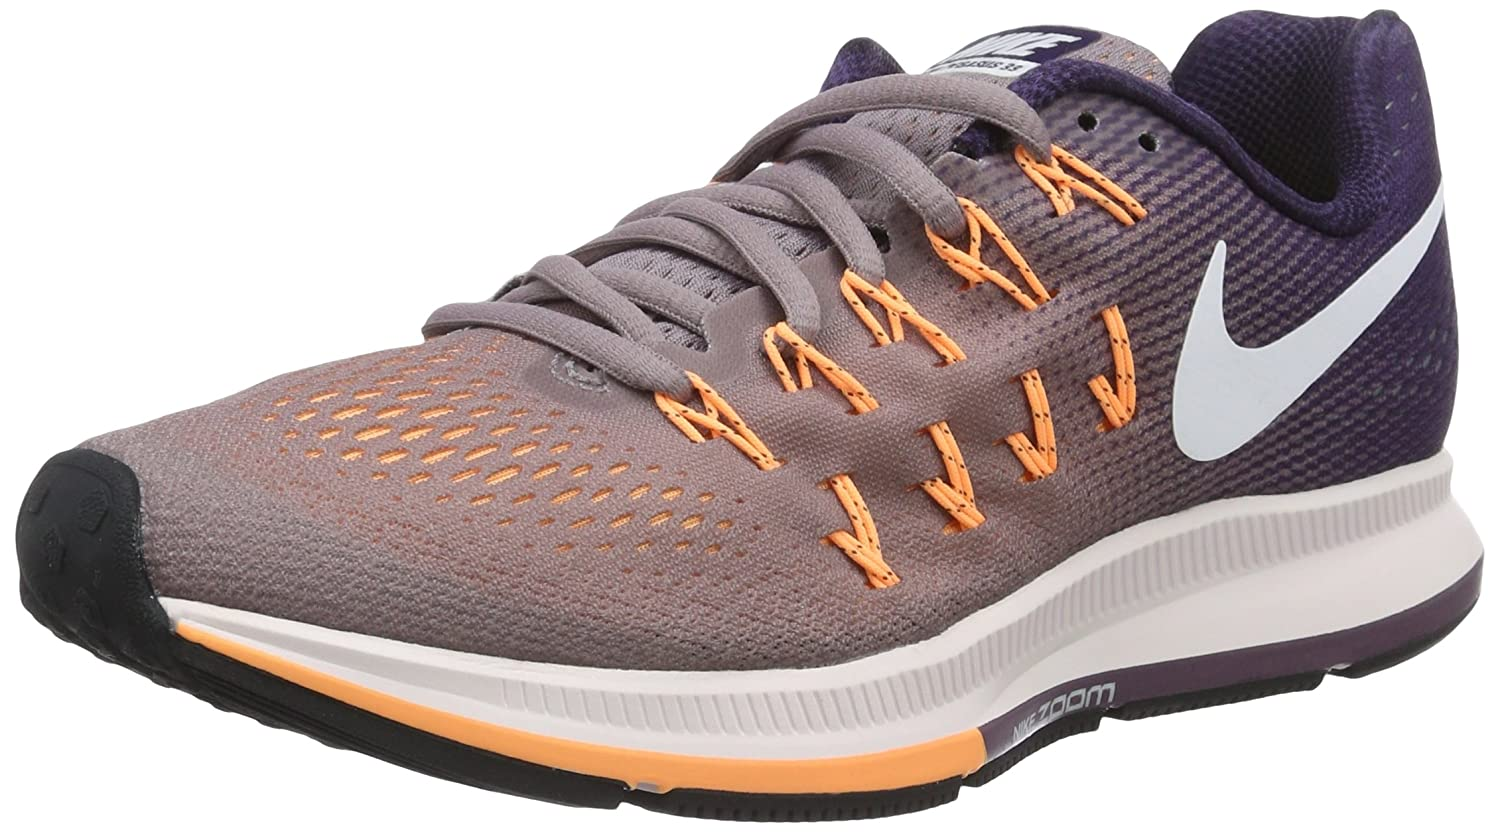 NIKE Women's Air Zoom Pegasus 33 B01CIYTWP4 9 B(M) US|Purple